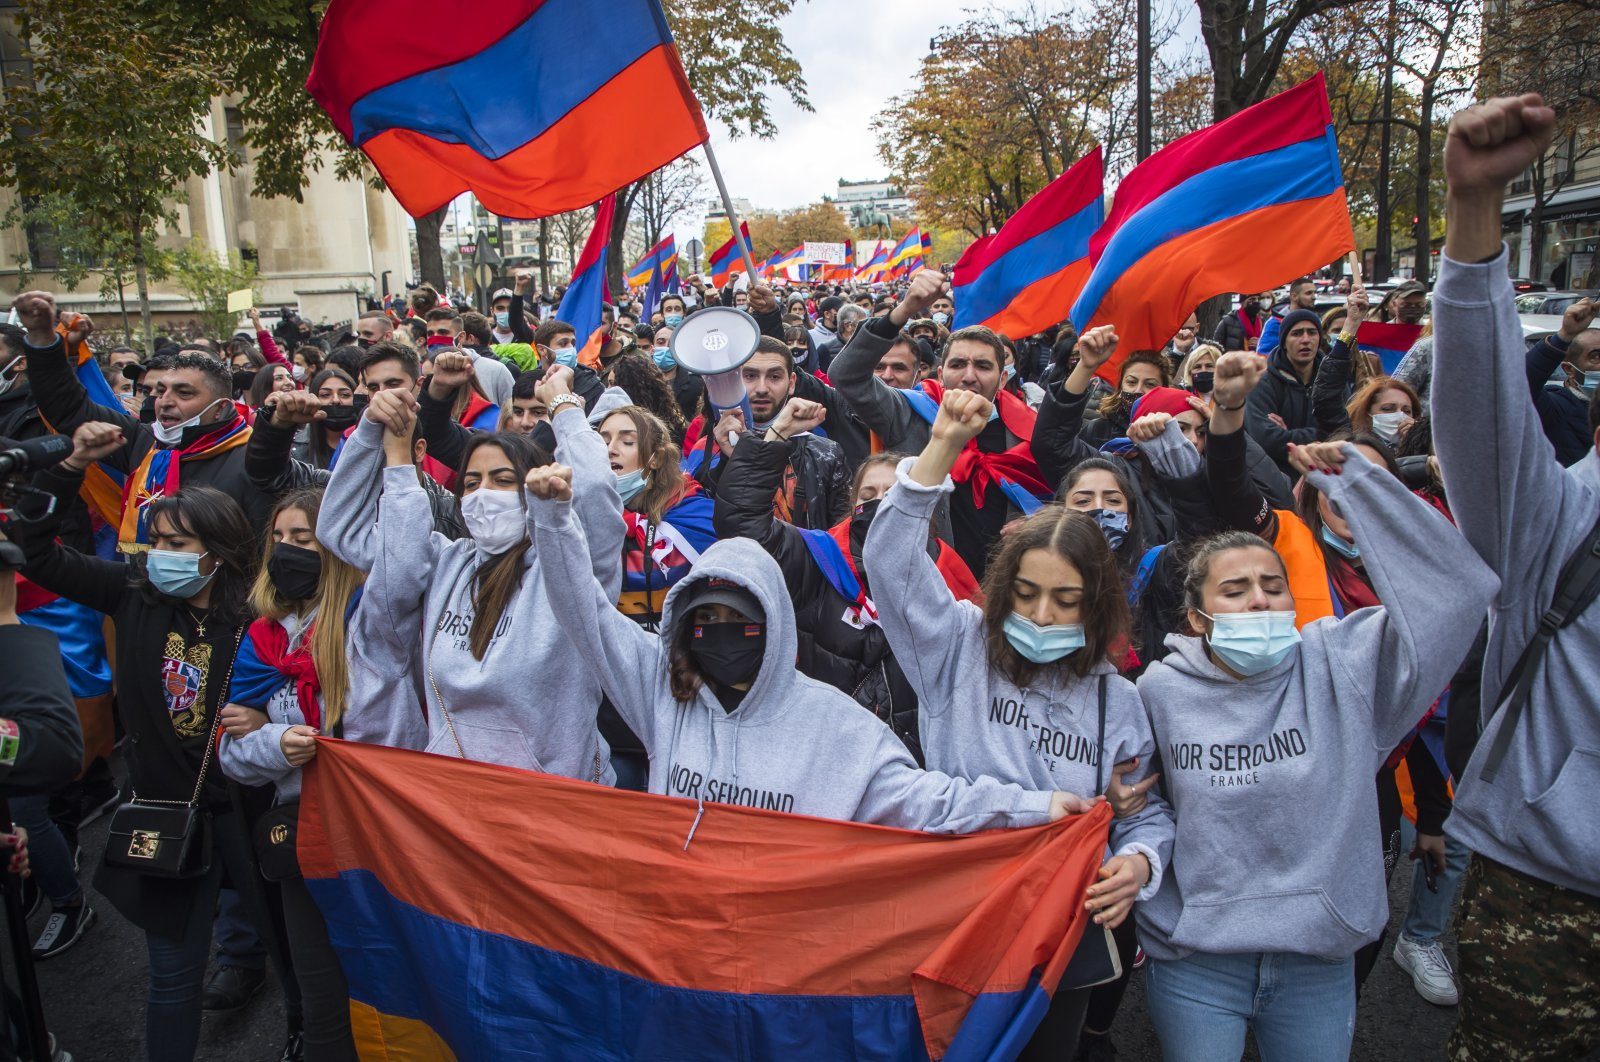 French-Armenian protesters hold Armenian flags as they shout slogans against Turkey during a demonstration supporting Armenia in Nagorno-Karabakh conflict in Paris, France, 25 October 2020. (EPA Photo)